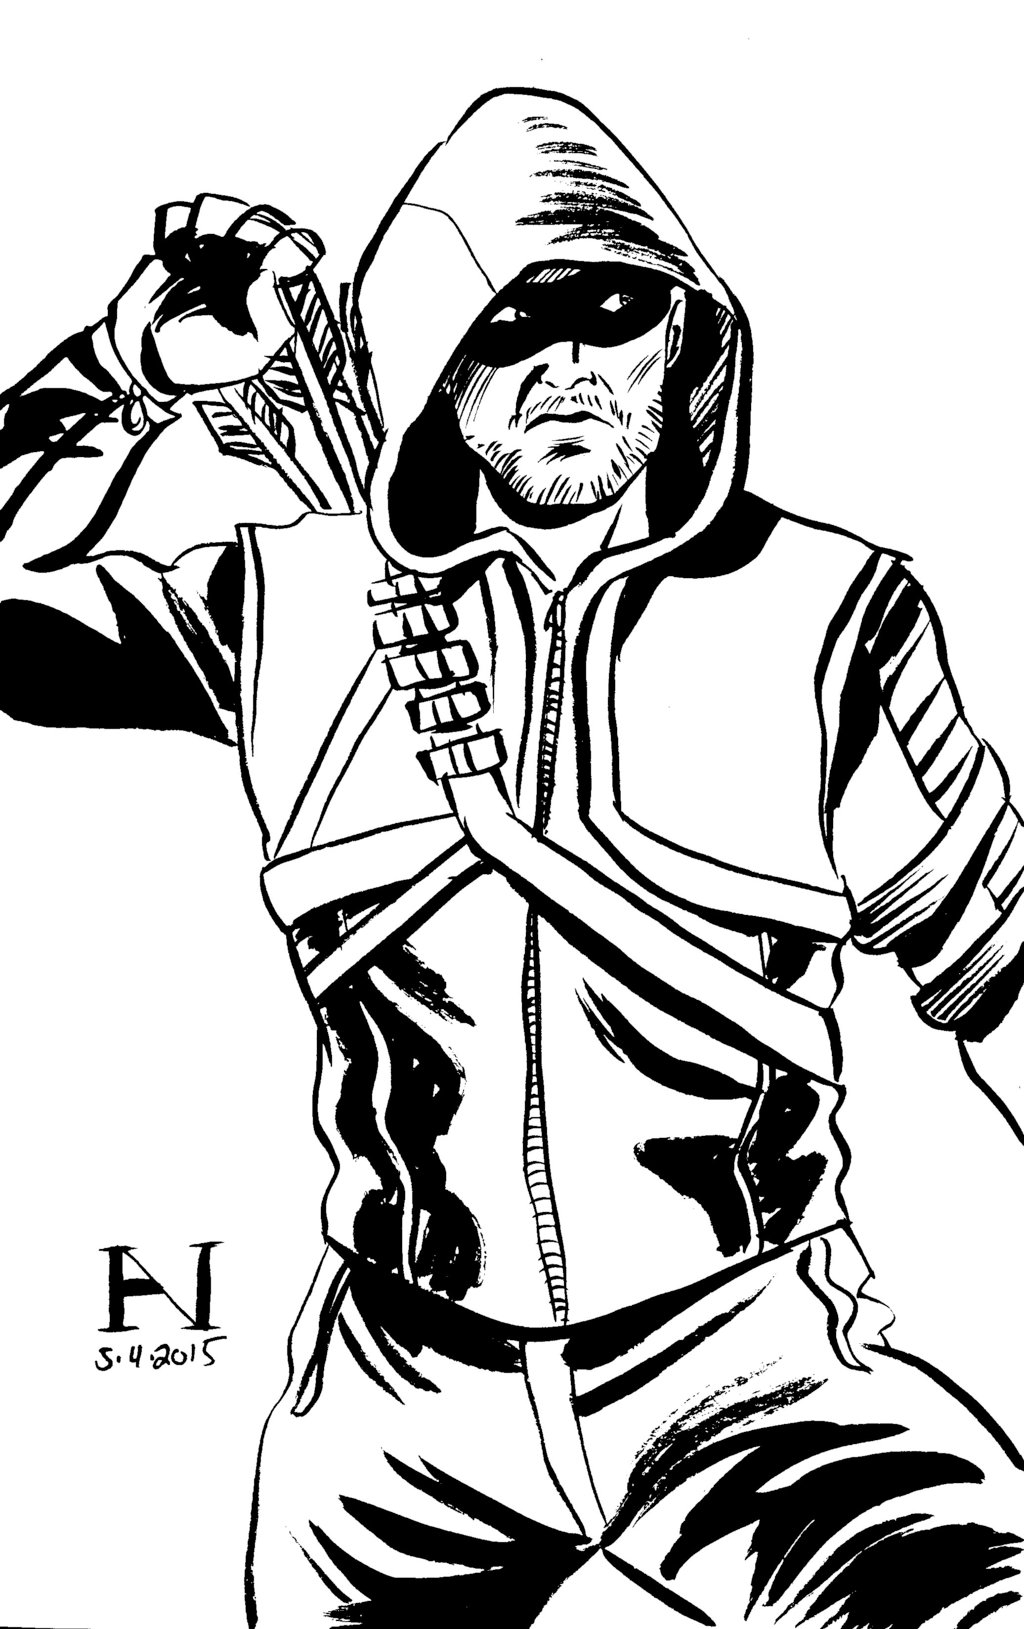 green arrow coloring pages - green arrow cw coloring pages K3pagYteROu8AYQ7MigV0ZAoeerL6X4yS8wOPCTqd7Q